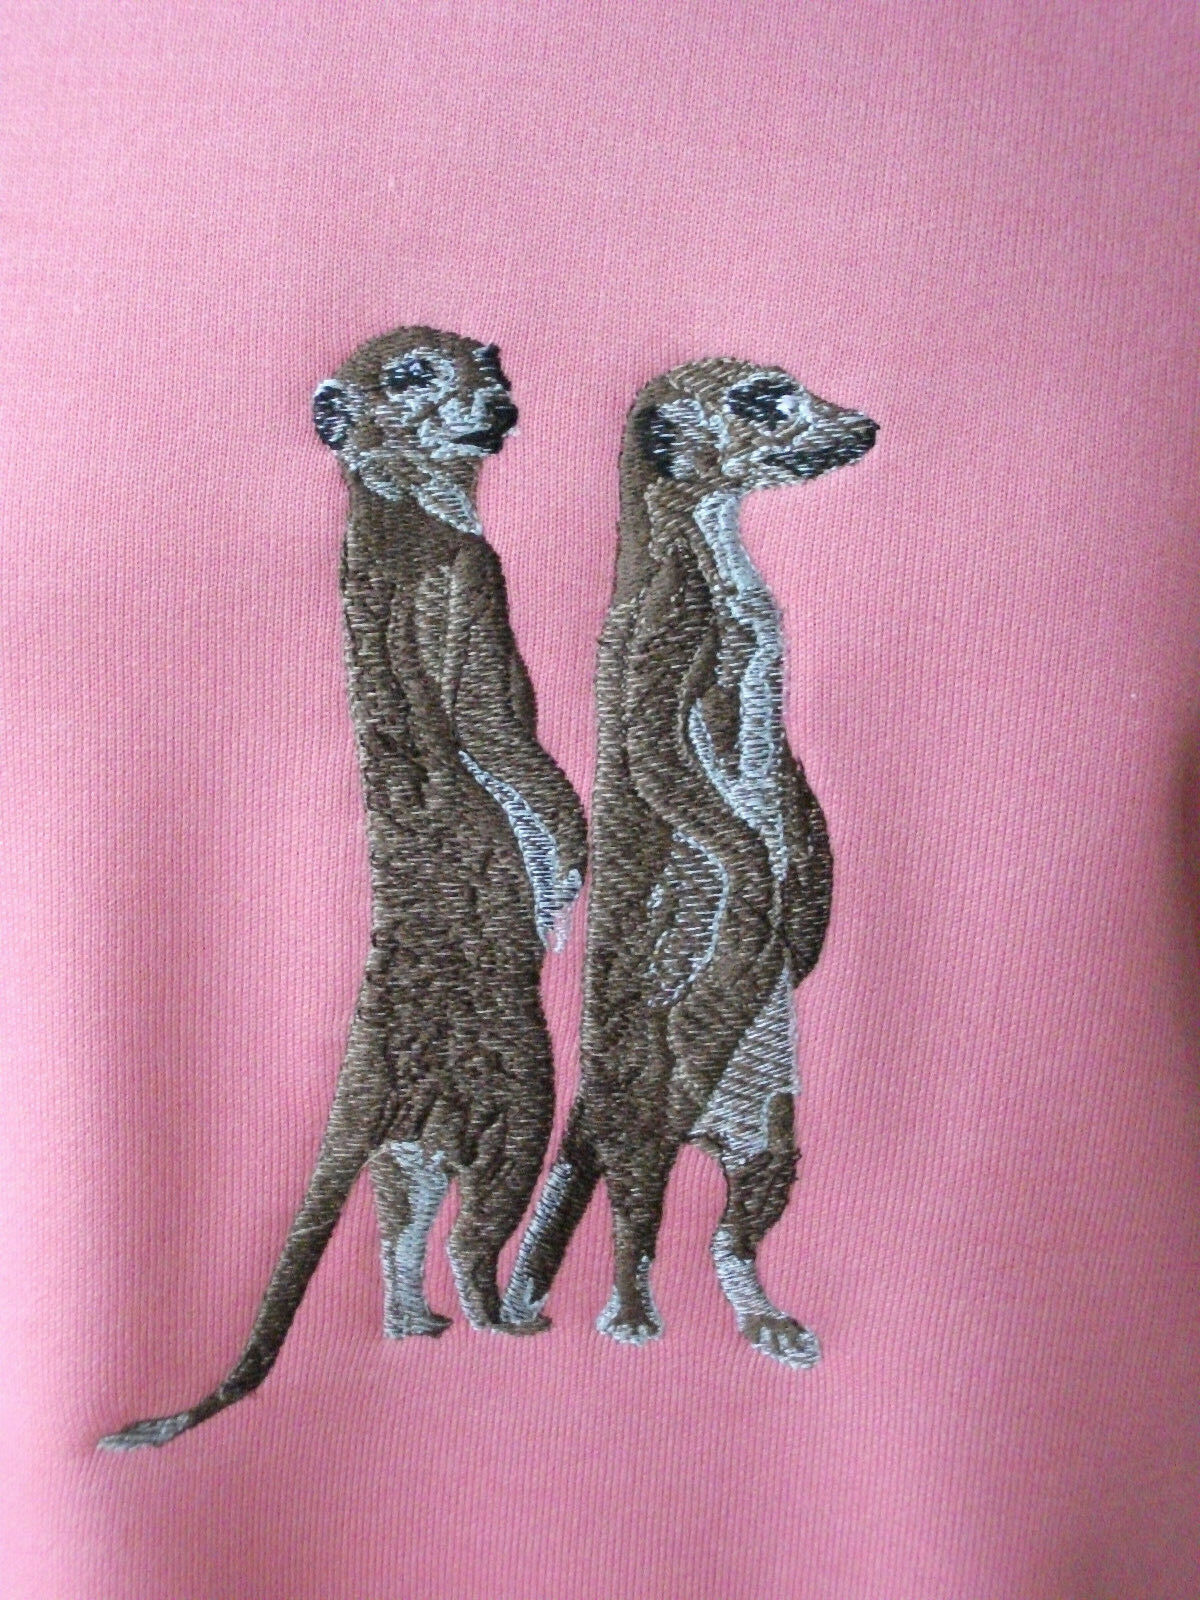 LADIES SWEATSHIRT,JUMPER,TOP WITH WITH WITH AN EMBROIDERED MEERKAT ANIMAL DESIGN PINK PINK f74fe1